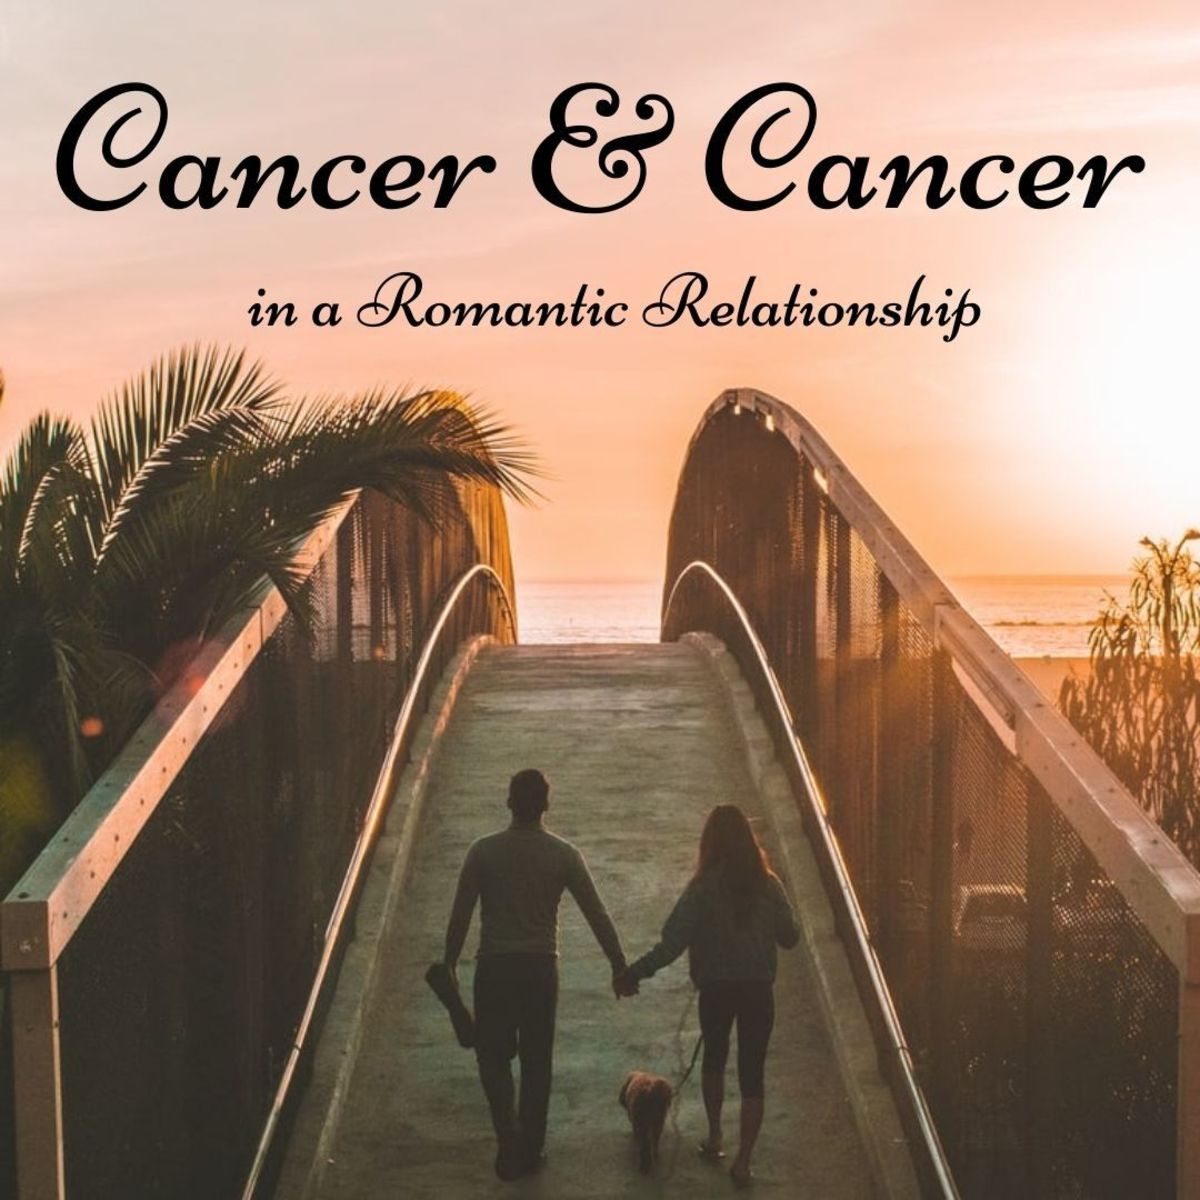 Relationship Compatibility for Cancer and Cancer ♋️